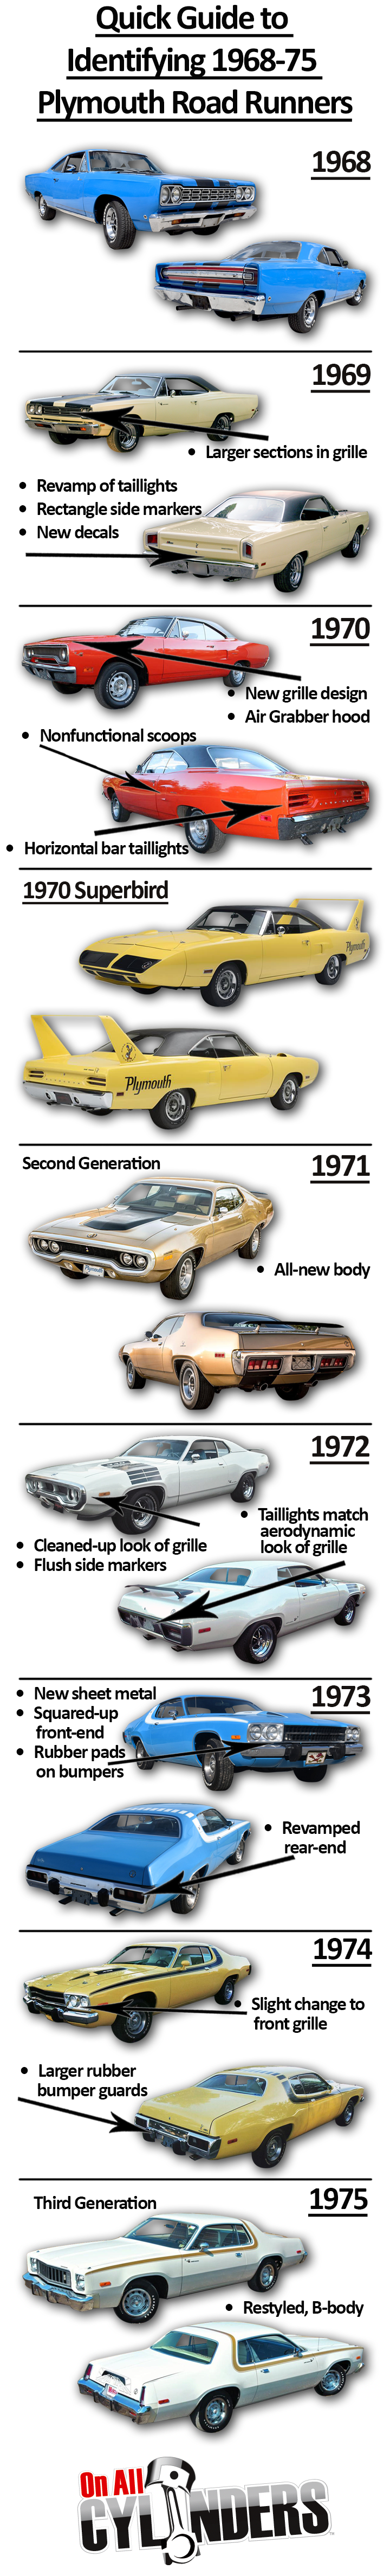 Ride Guides: A Quick Guide to Identifying 1968-'75 Plymouth